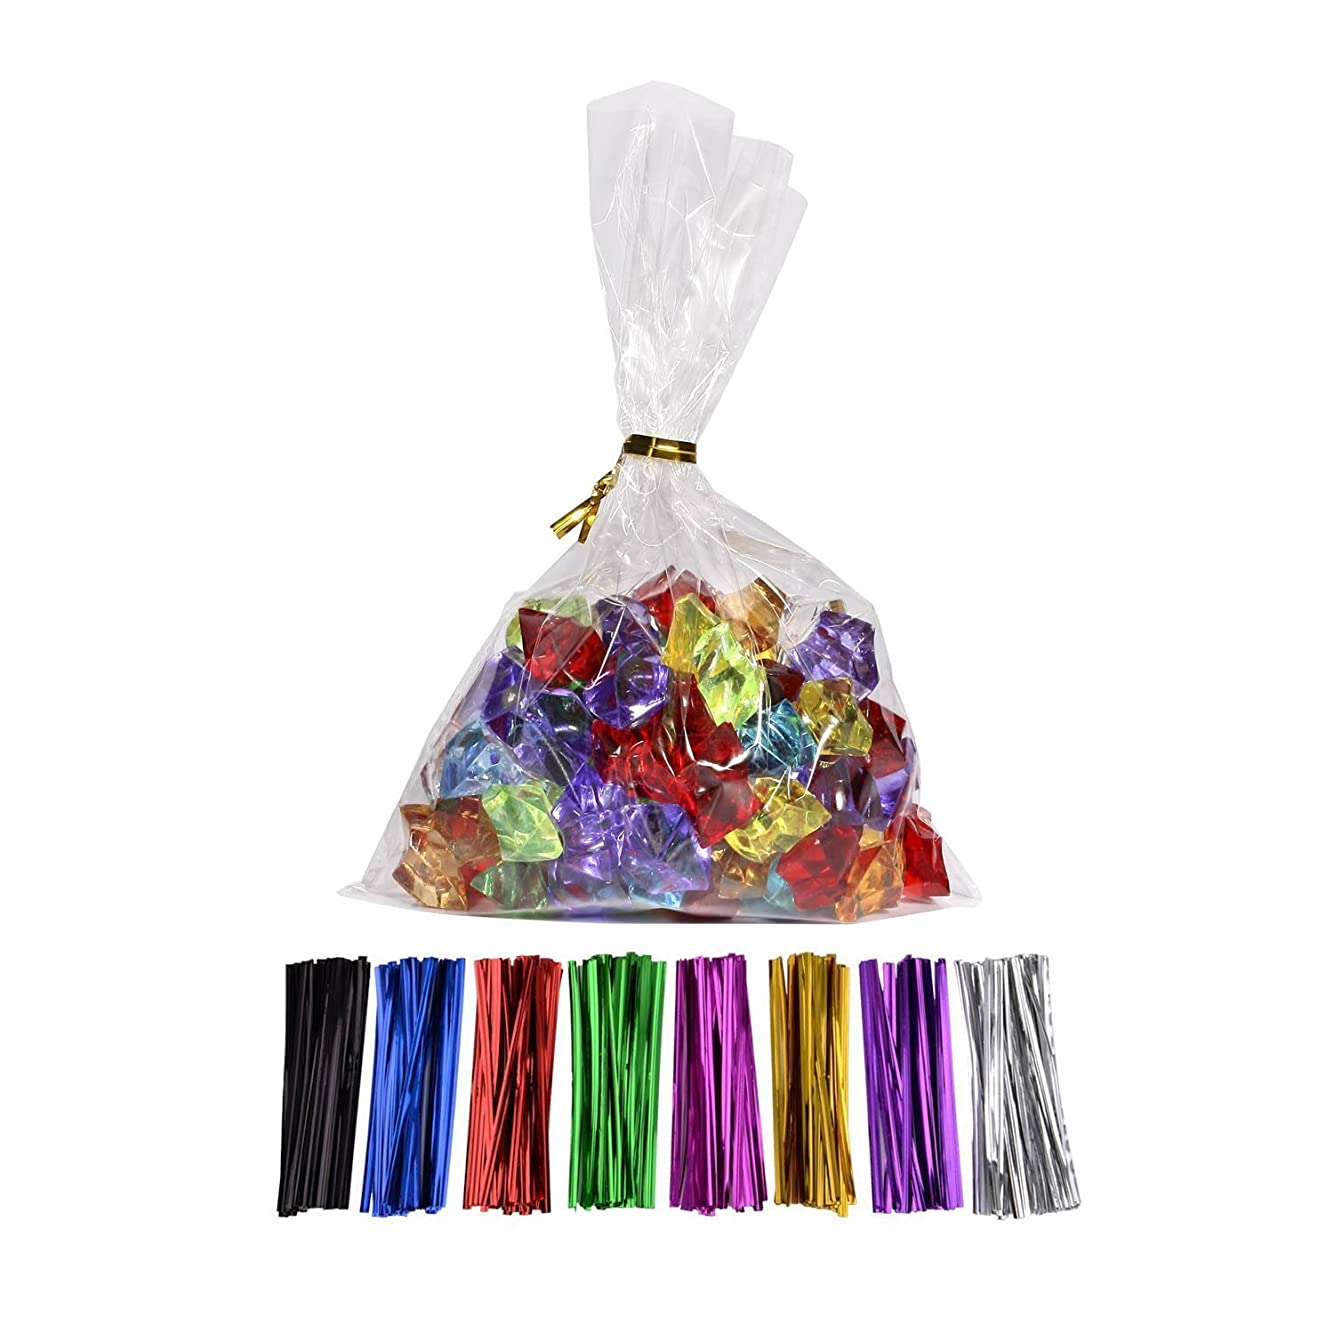 MoloTAR 100 Pcs 10 in x 6 in(1.4mil.) Clear Flat Cello Cellophane Treat Bags Good for Bakery, Cookies, Candies,Dessert with one random color Twist Ties! 6